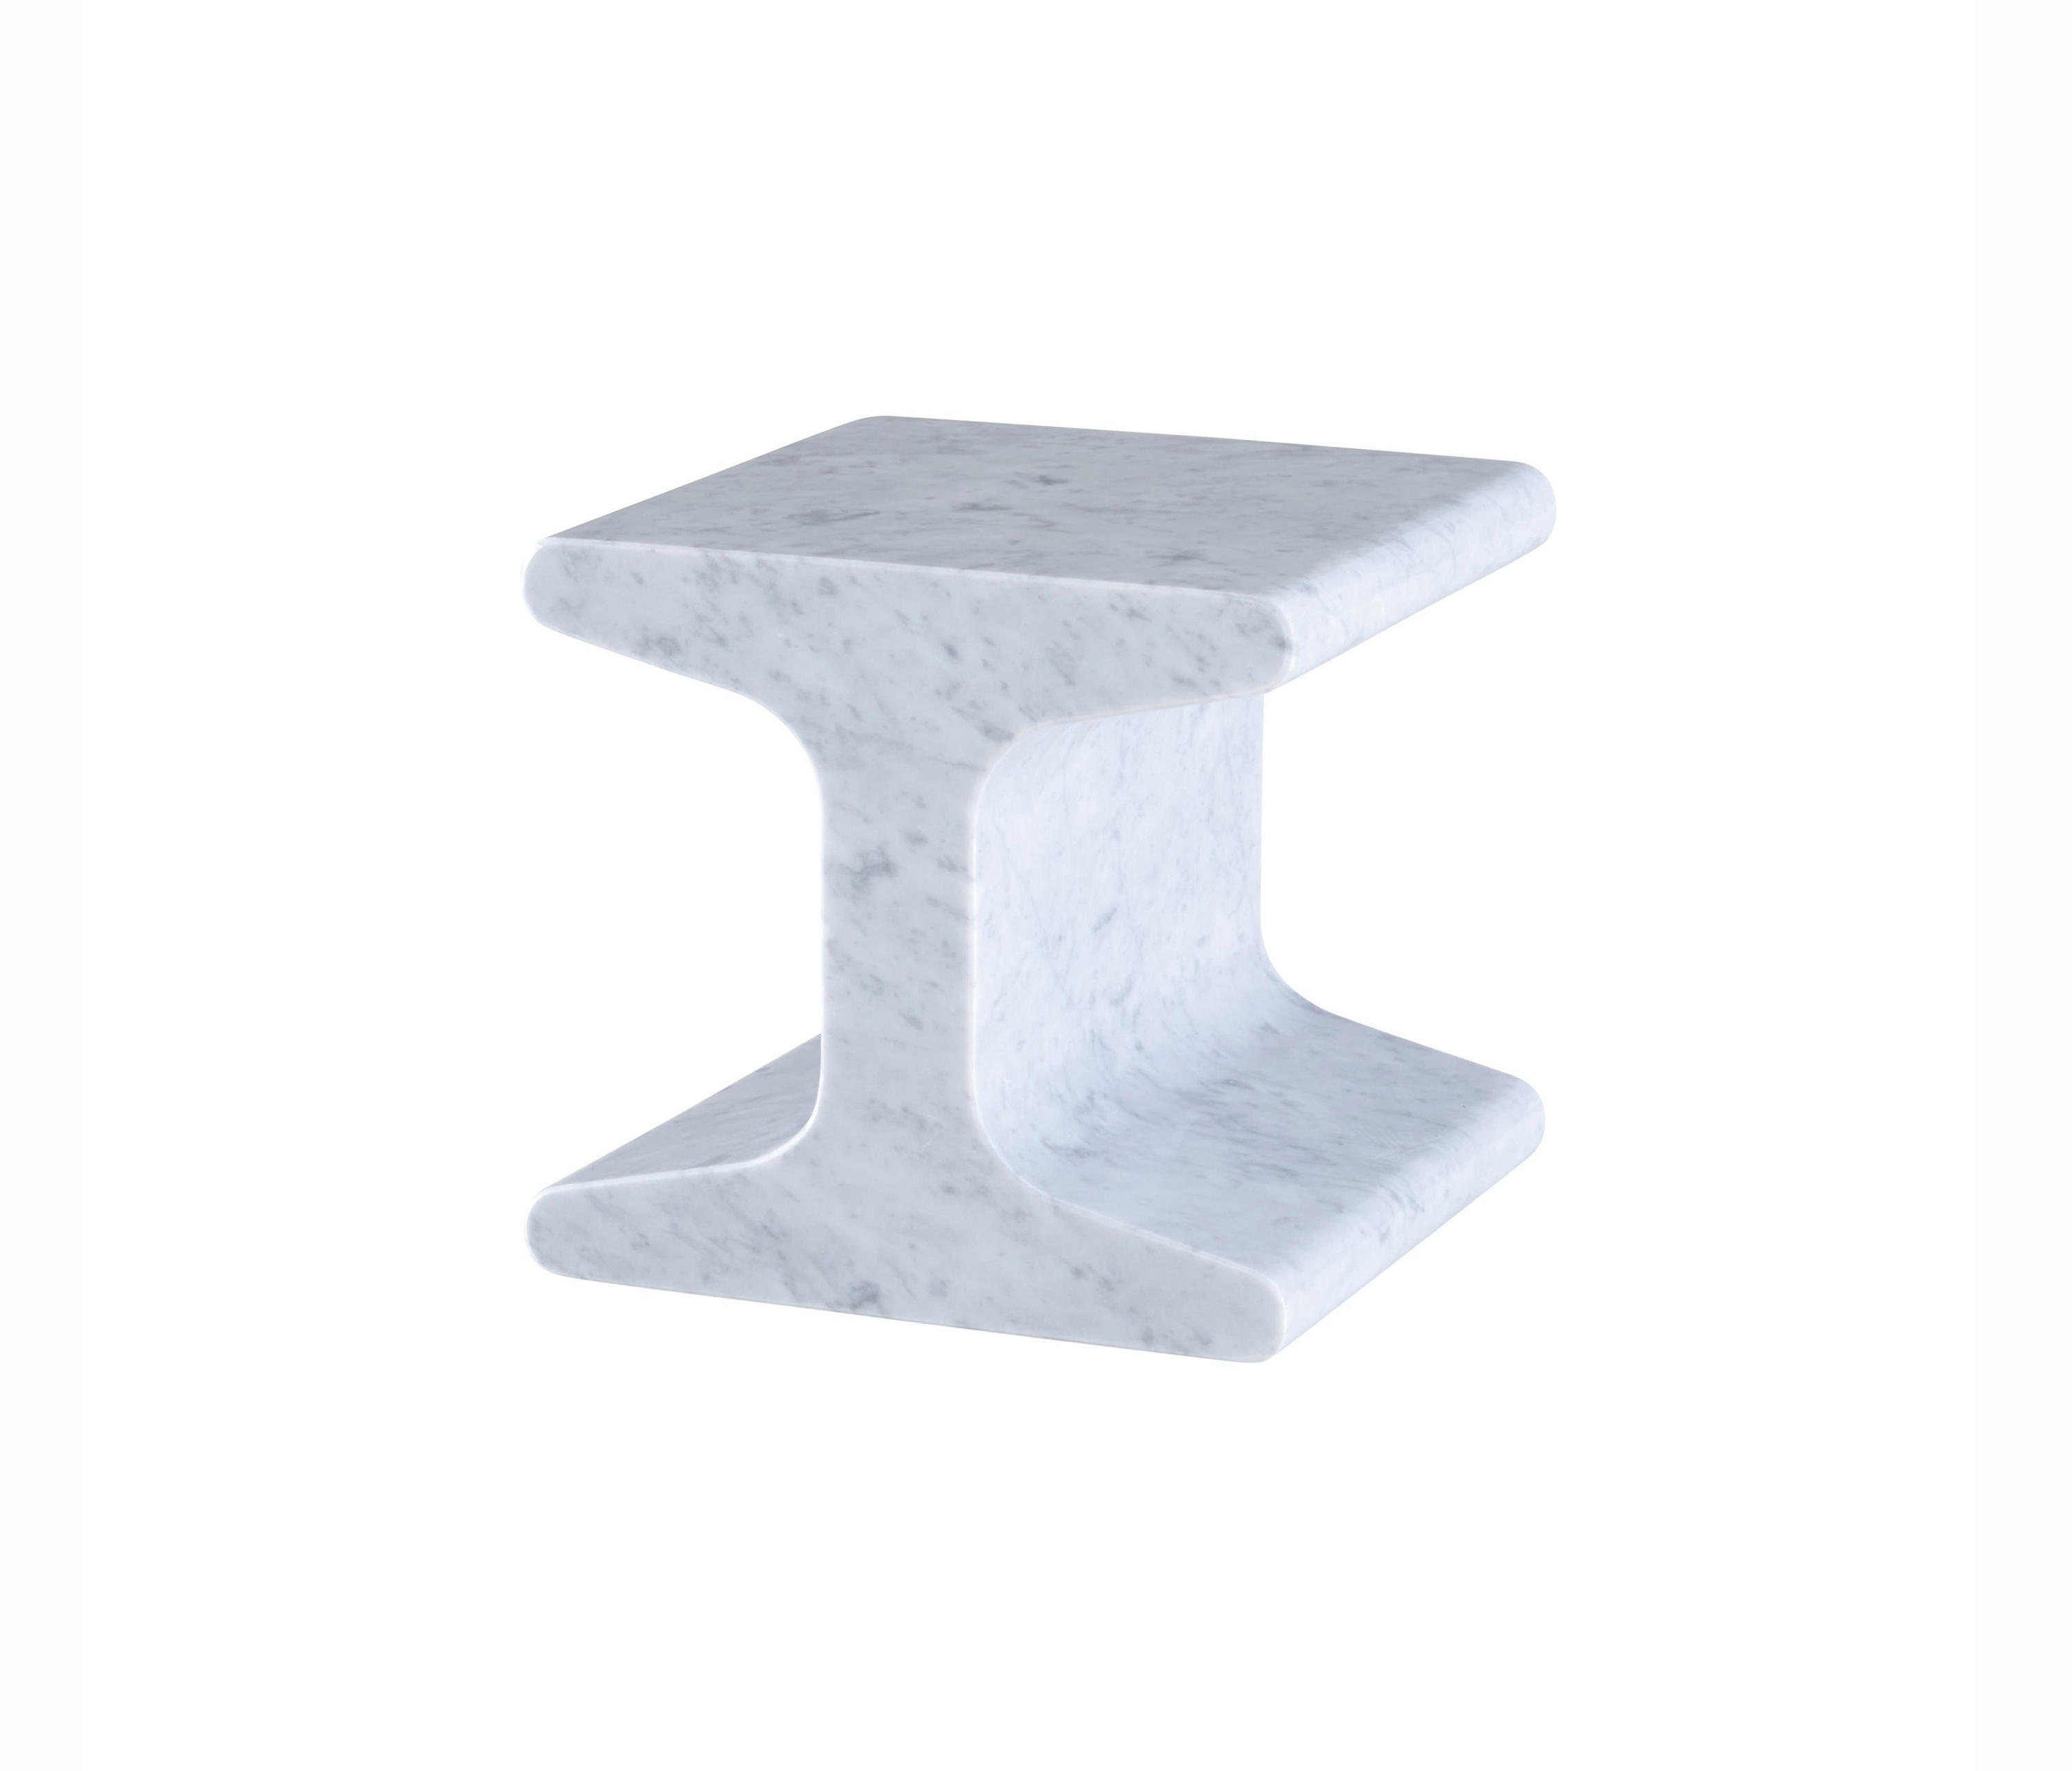 Table Ipn ipn  sofa end table - side tables from ligne roset   architonic